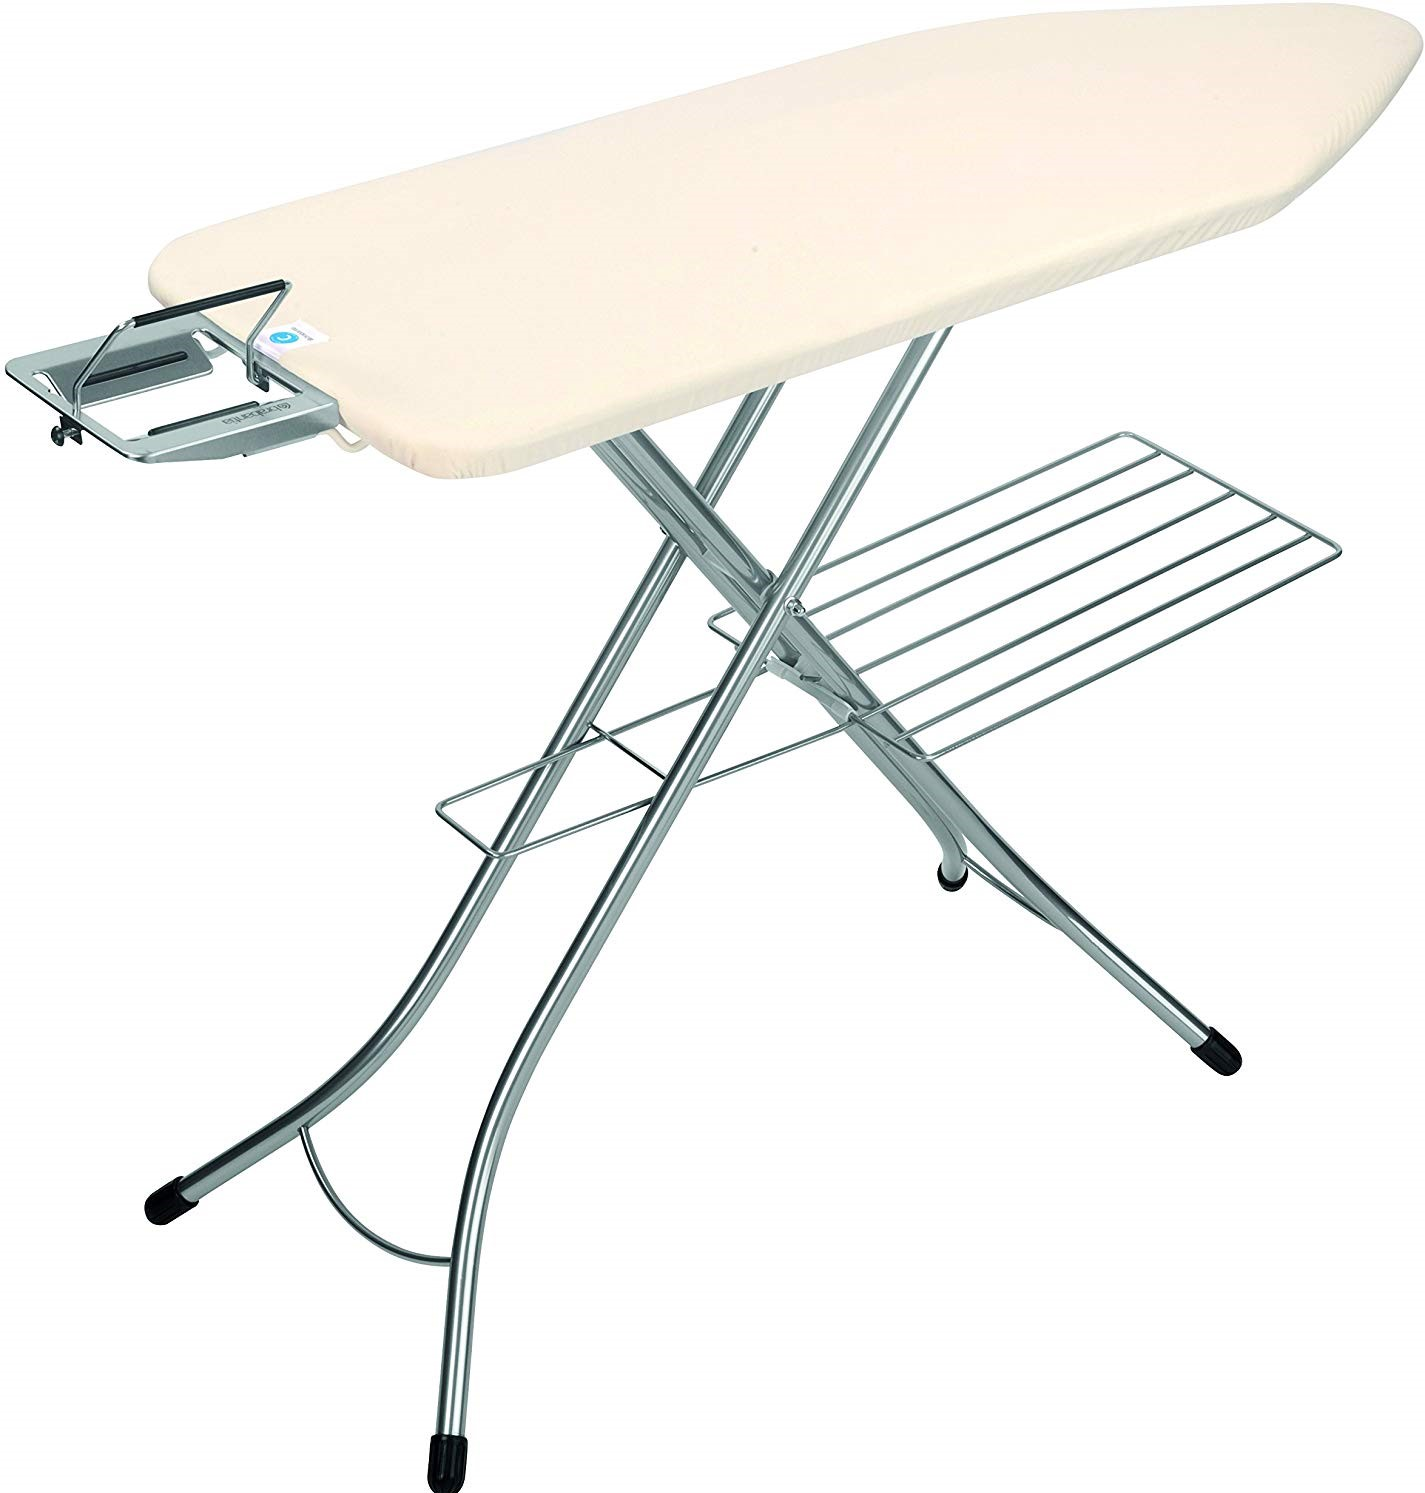 Best Ironing Board 2021 Value For Money In Depth Review